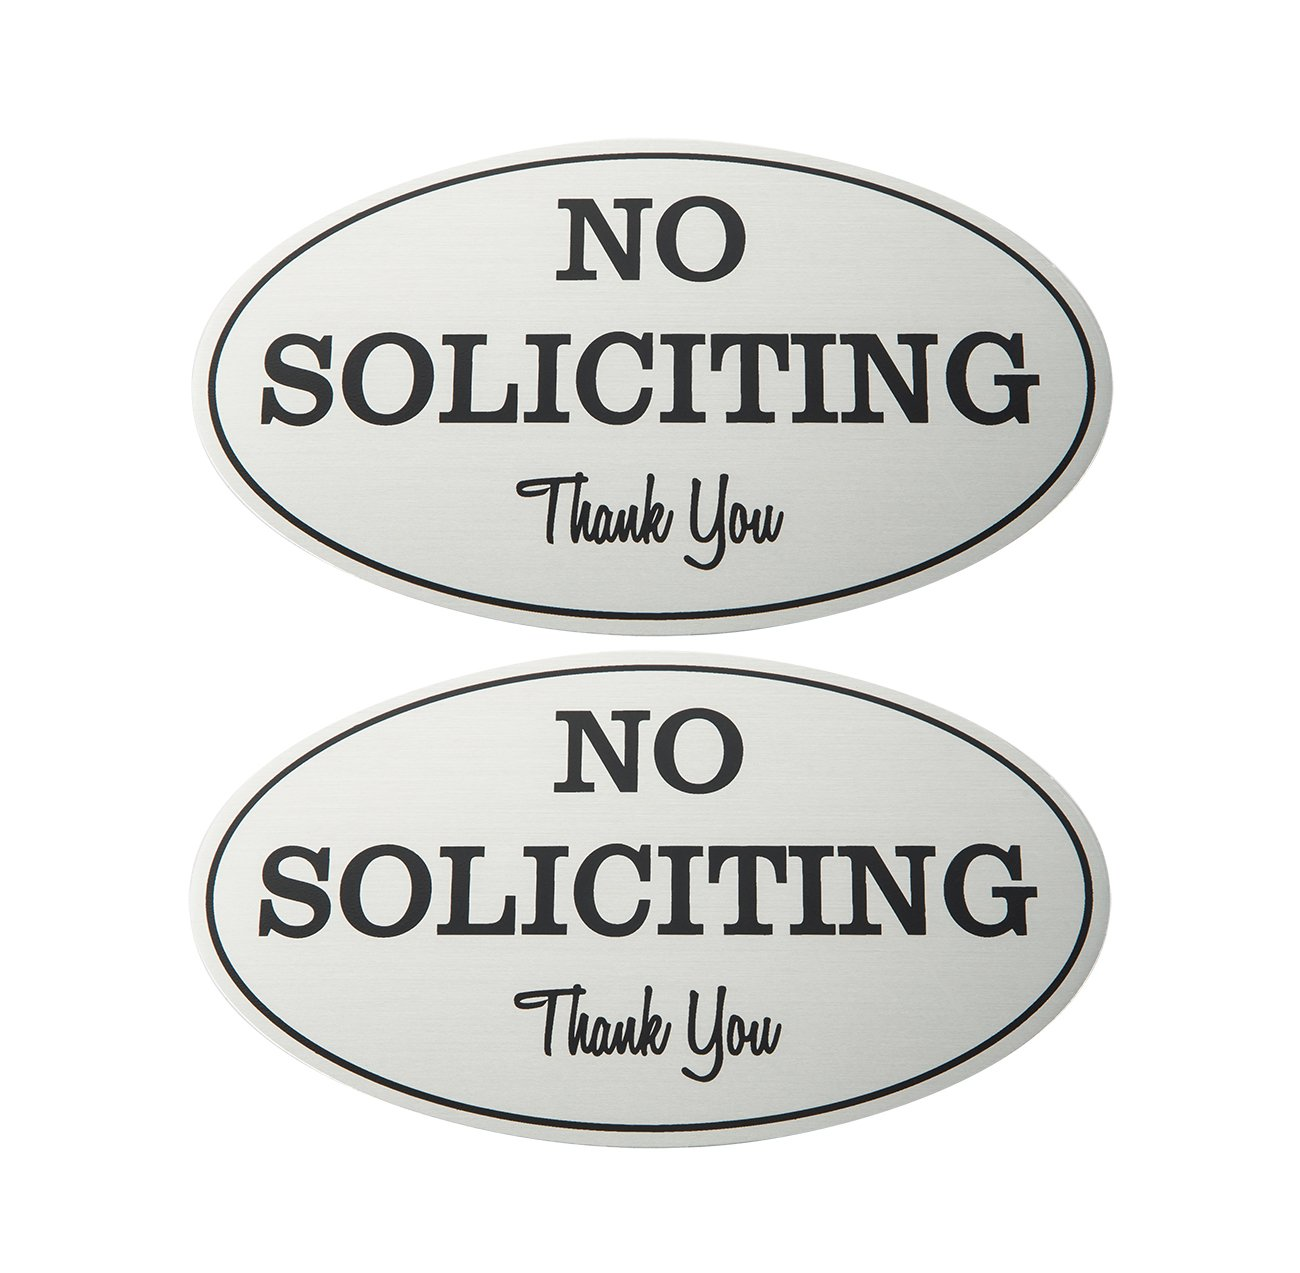 2Pack No Soliciting Signs – NoトレスパスSigns、Private Property Signs、NO勧誘自己粘着オーバルアルミSigns for Officeビジネス、自宅使用、シルバー – 7 x 4.4 CM B078PGDBS7